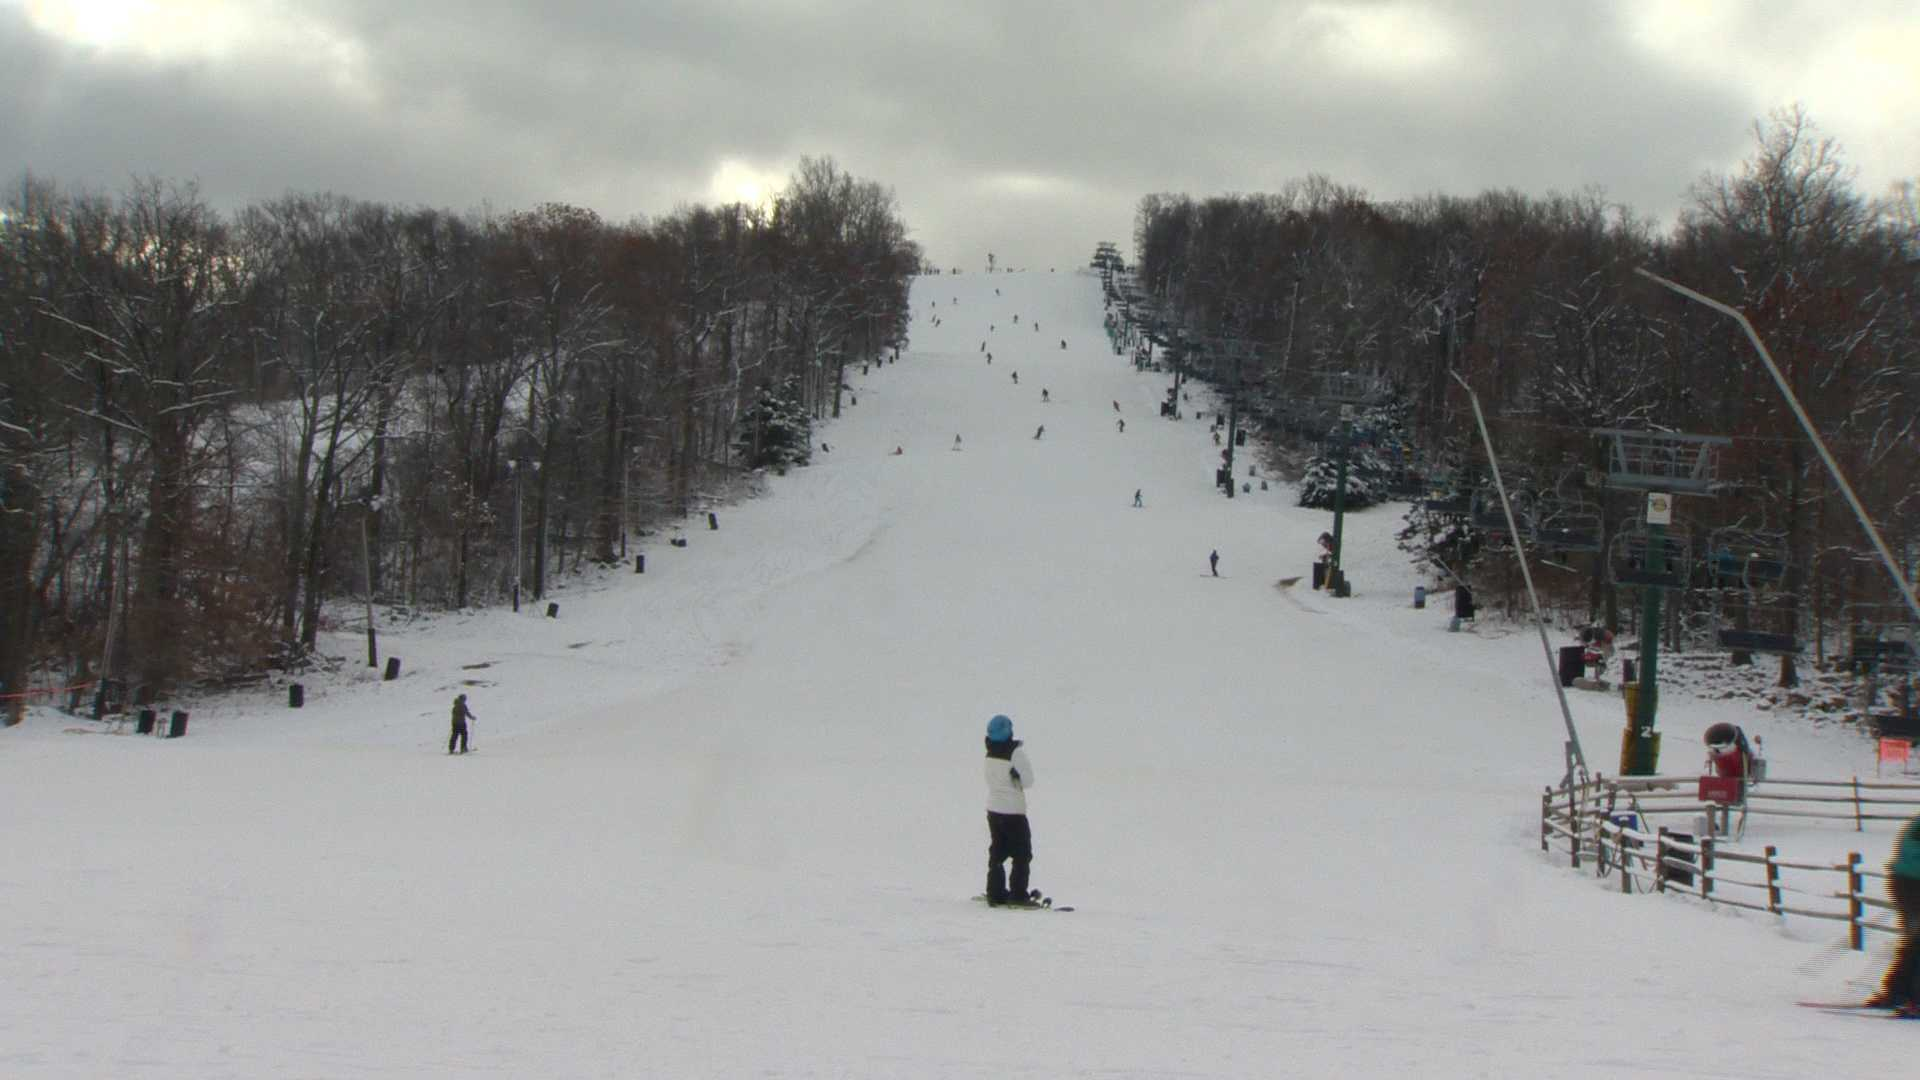 Ski Roundtop opens for the 2014-2015 season Friday.